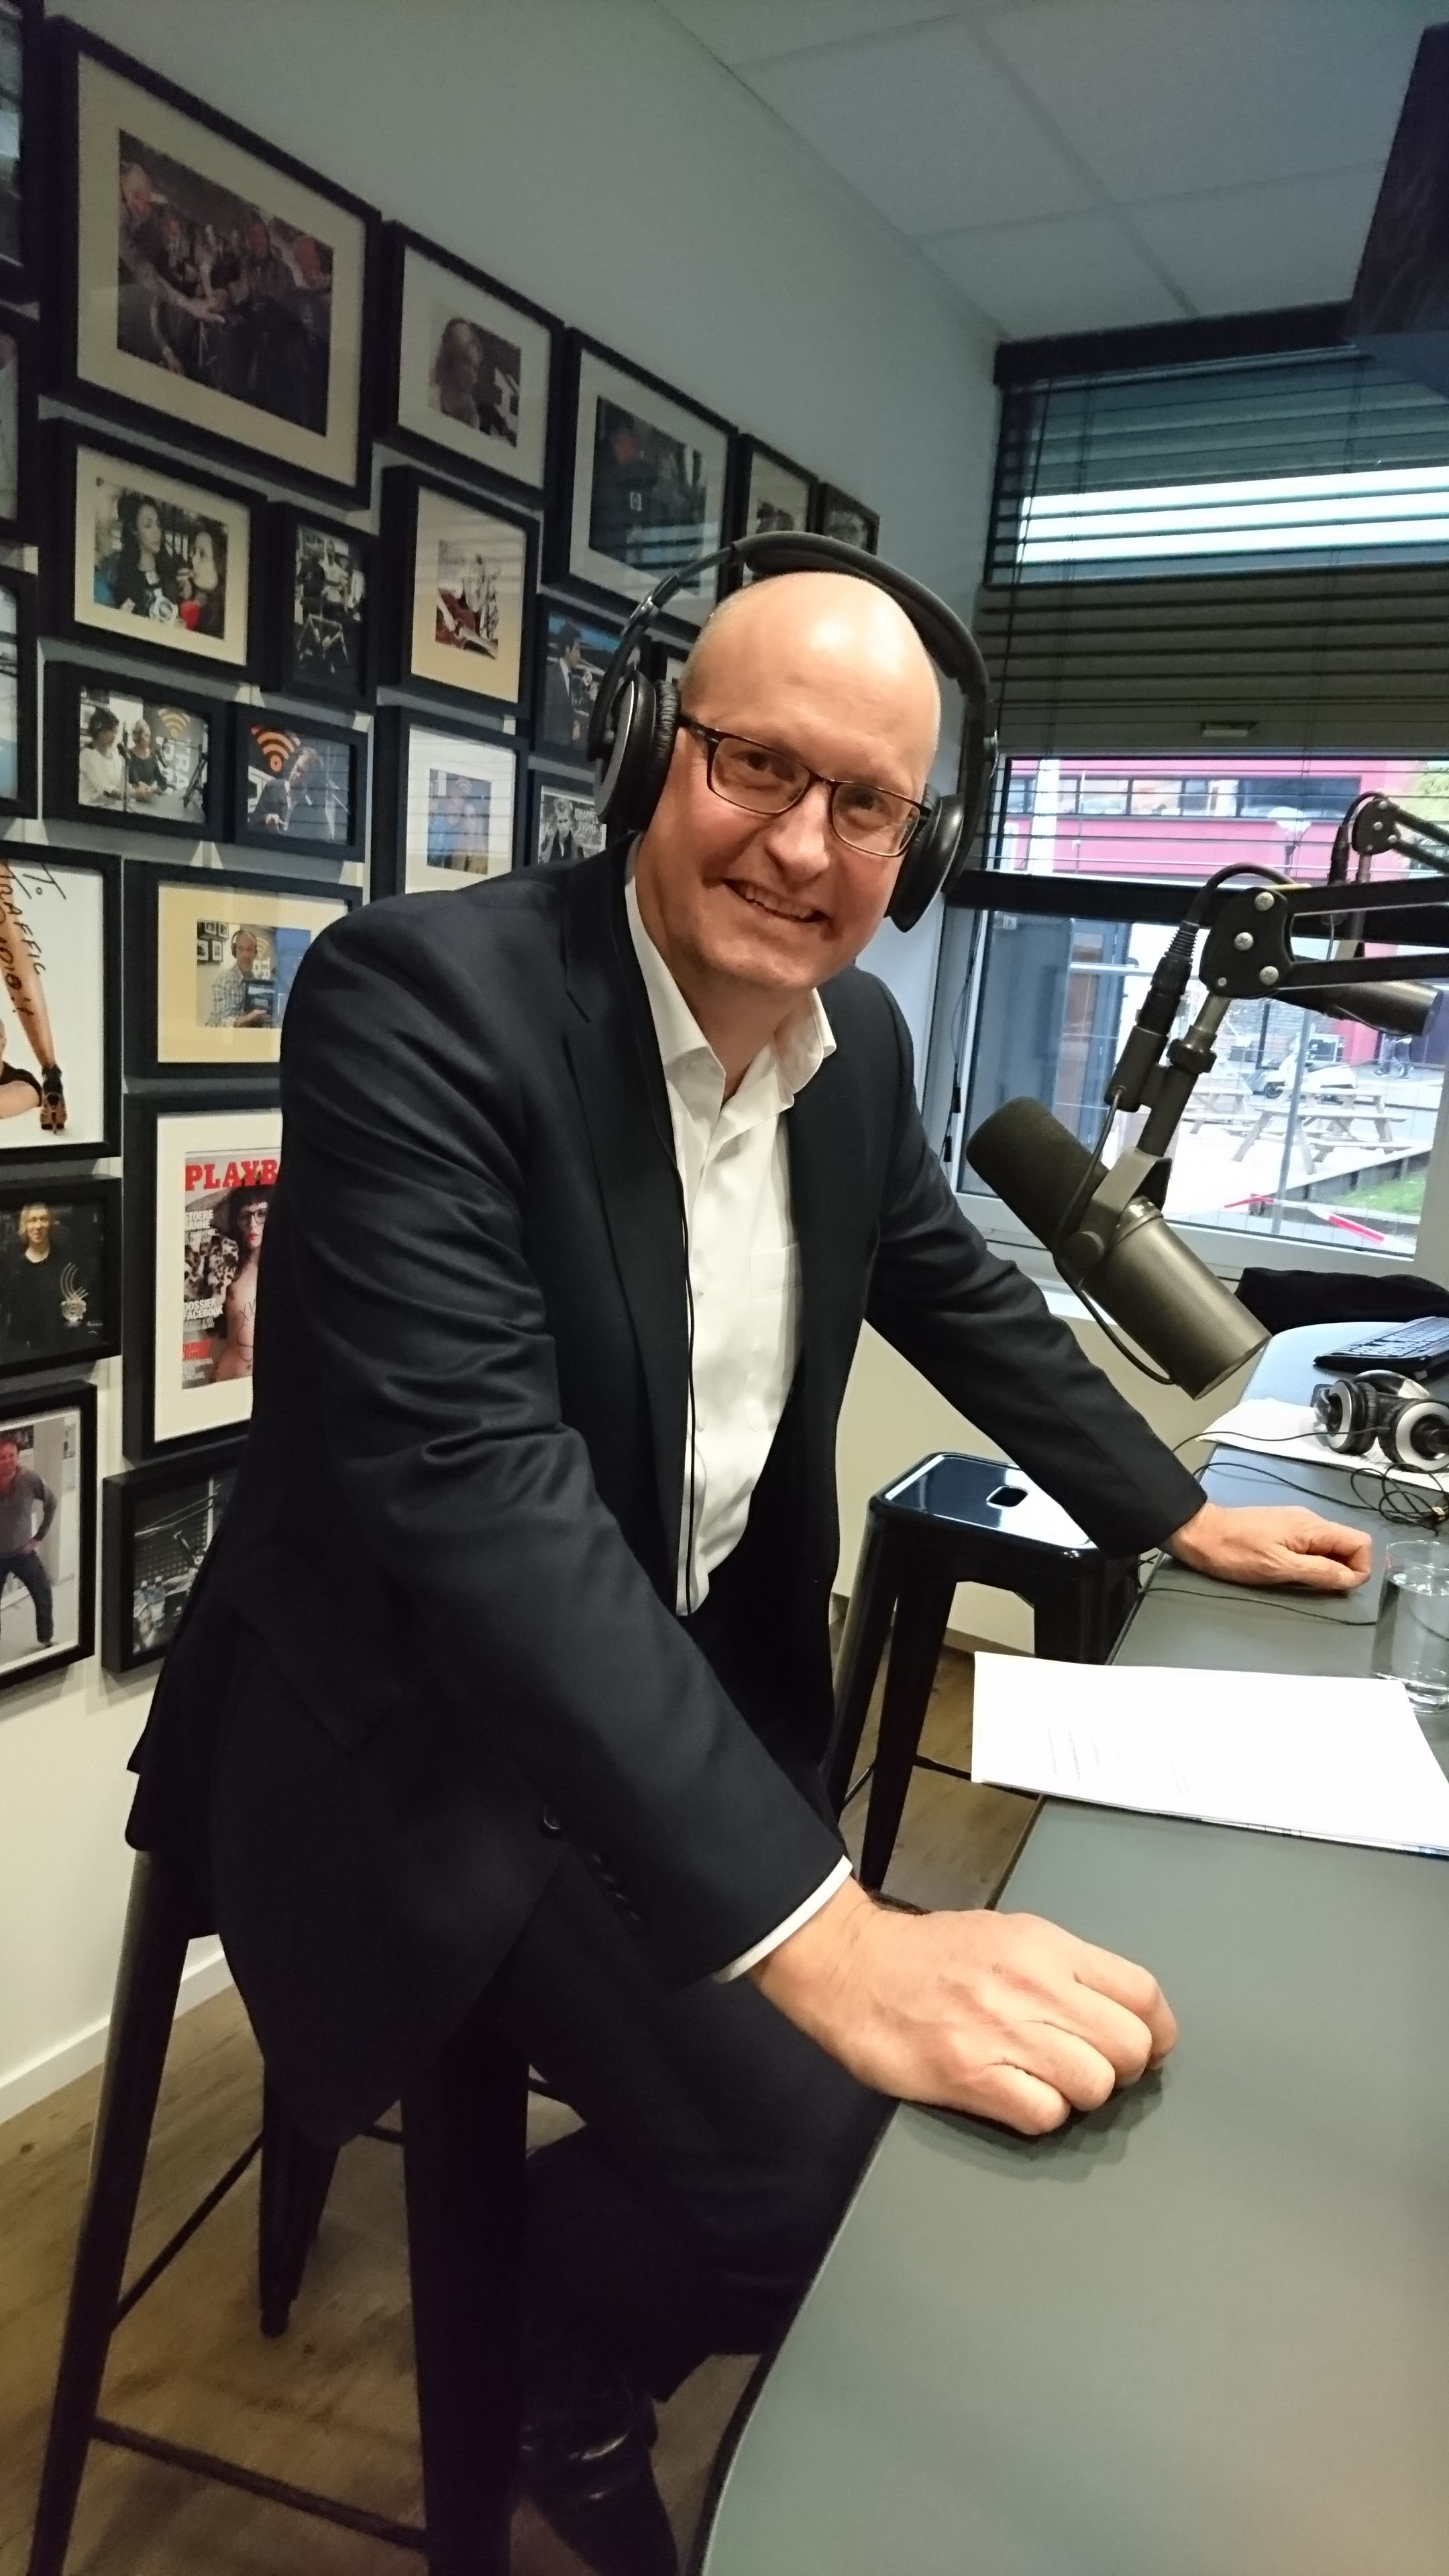 Hans Klein-Swormink, national project leader at the Chamber of Commerce, guests of Jacqueline Zuidweg during her Fall Up and Continue program on New Business Radio, Zuidweg and Partners